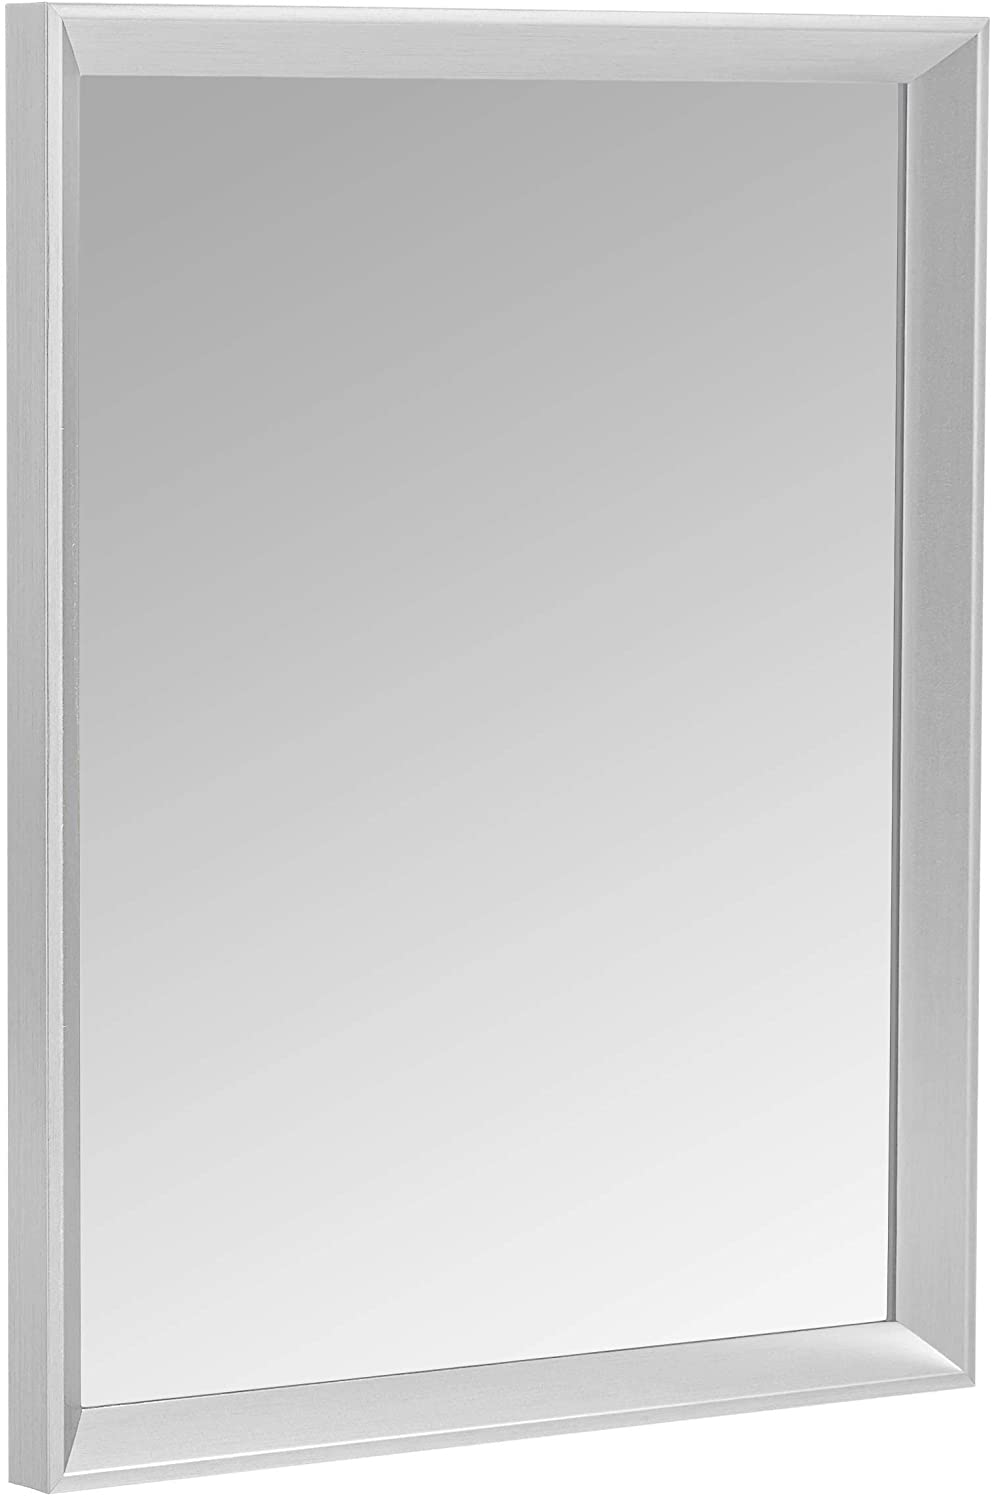 AmazonBasics Rectangular Peaked Trim Wall Bath Mirror